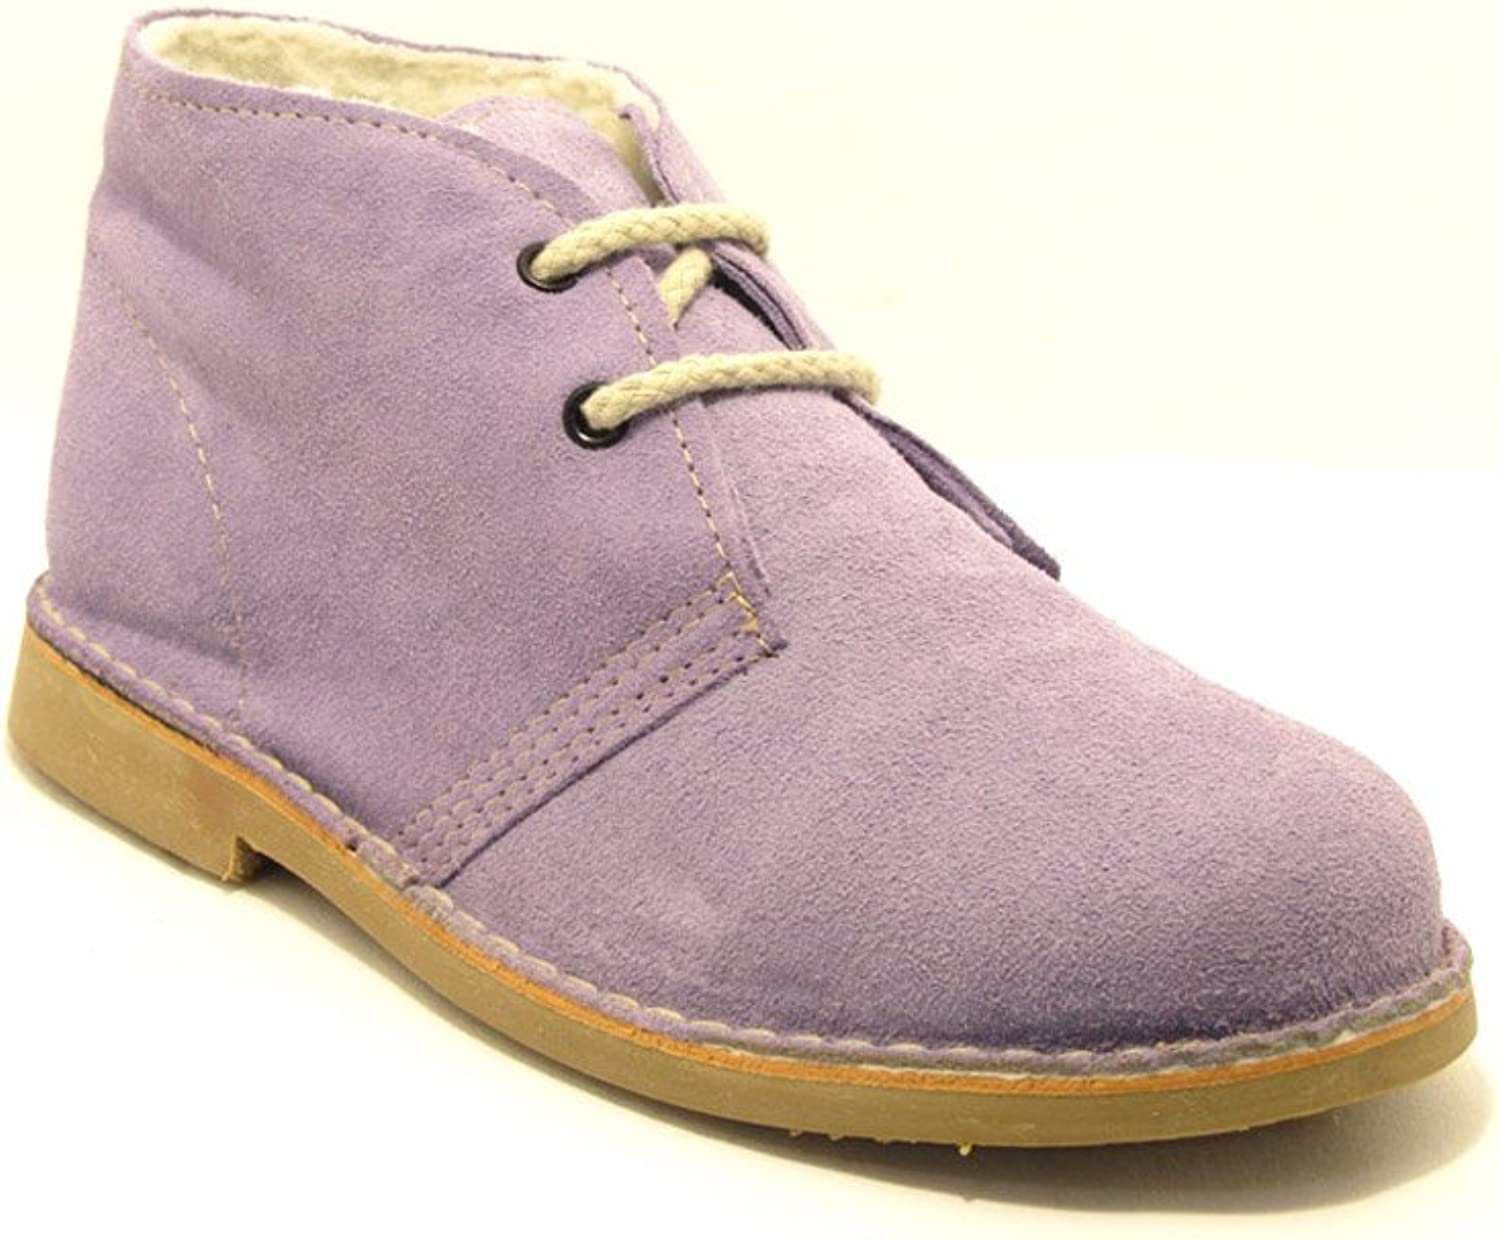 La Auténtica 807FB - Desert Boot Lined, Unisex Adult, purplec